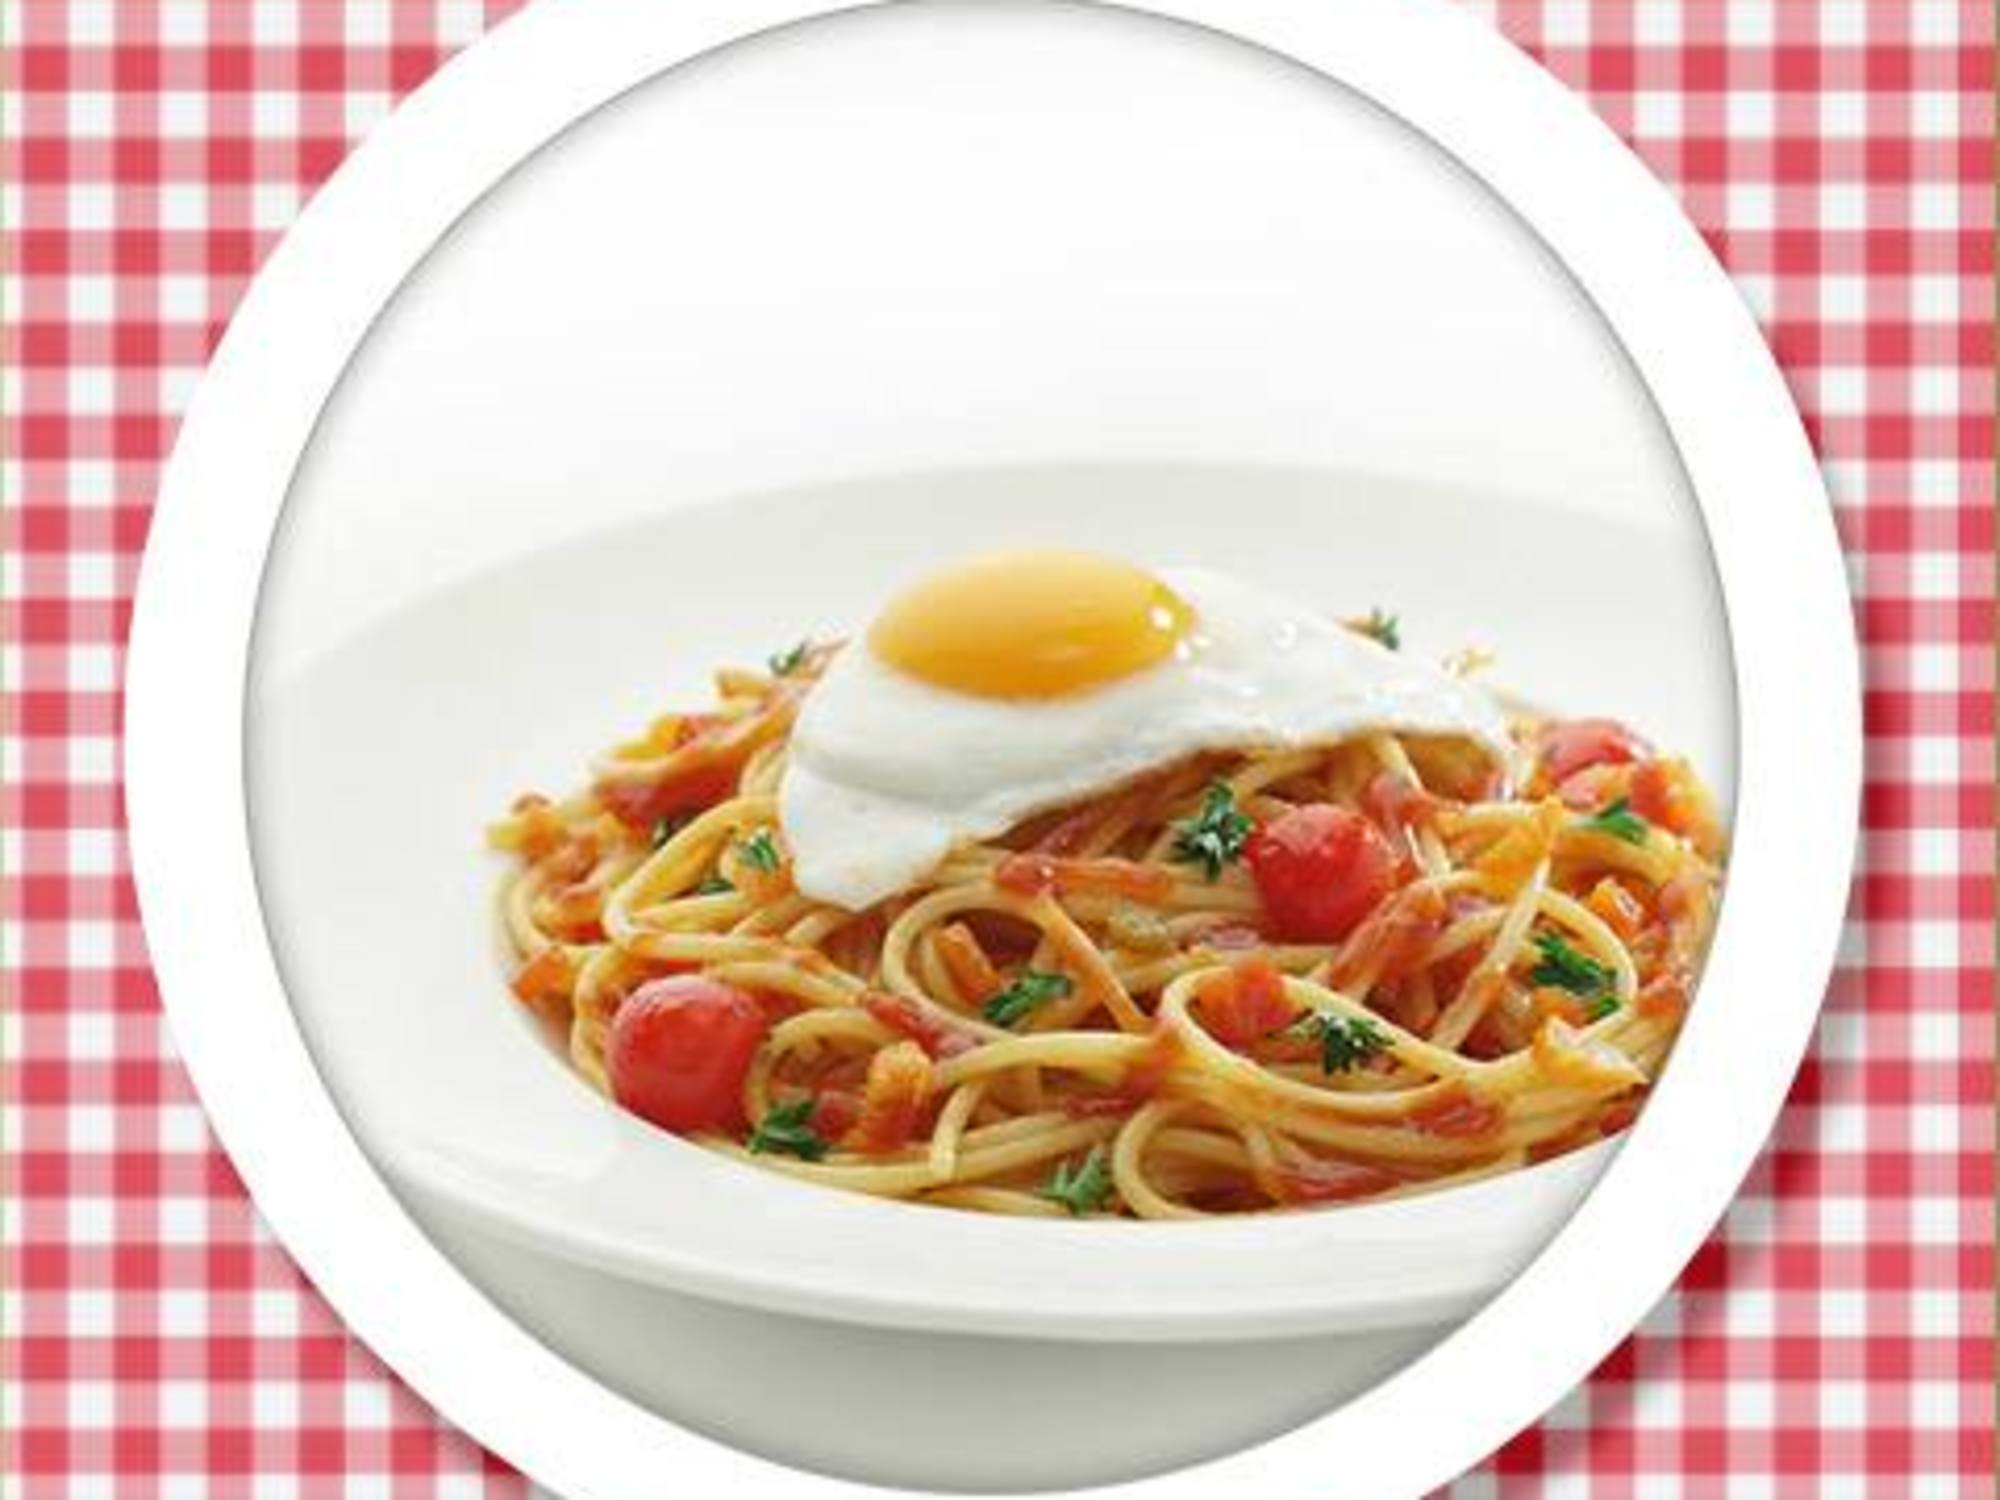 Recipe of Spaghetti with Fried Egg